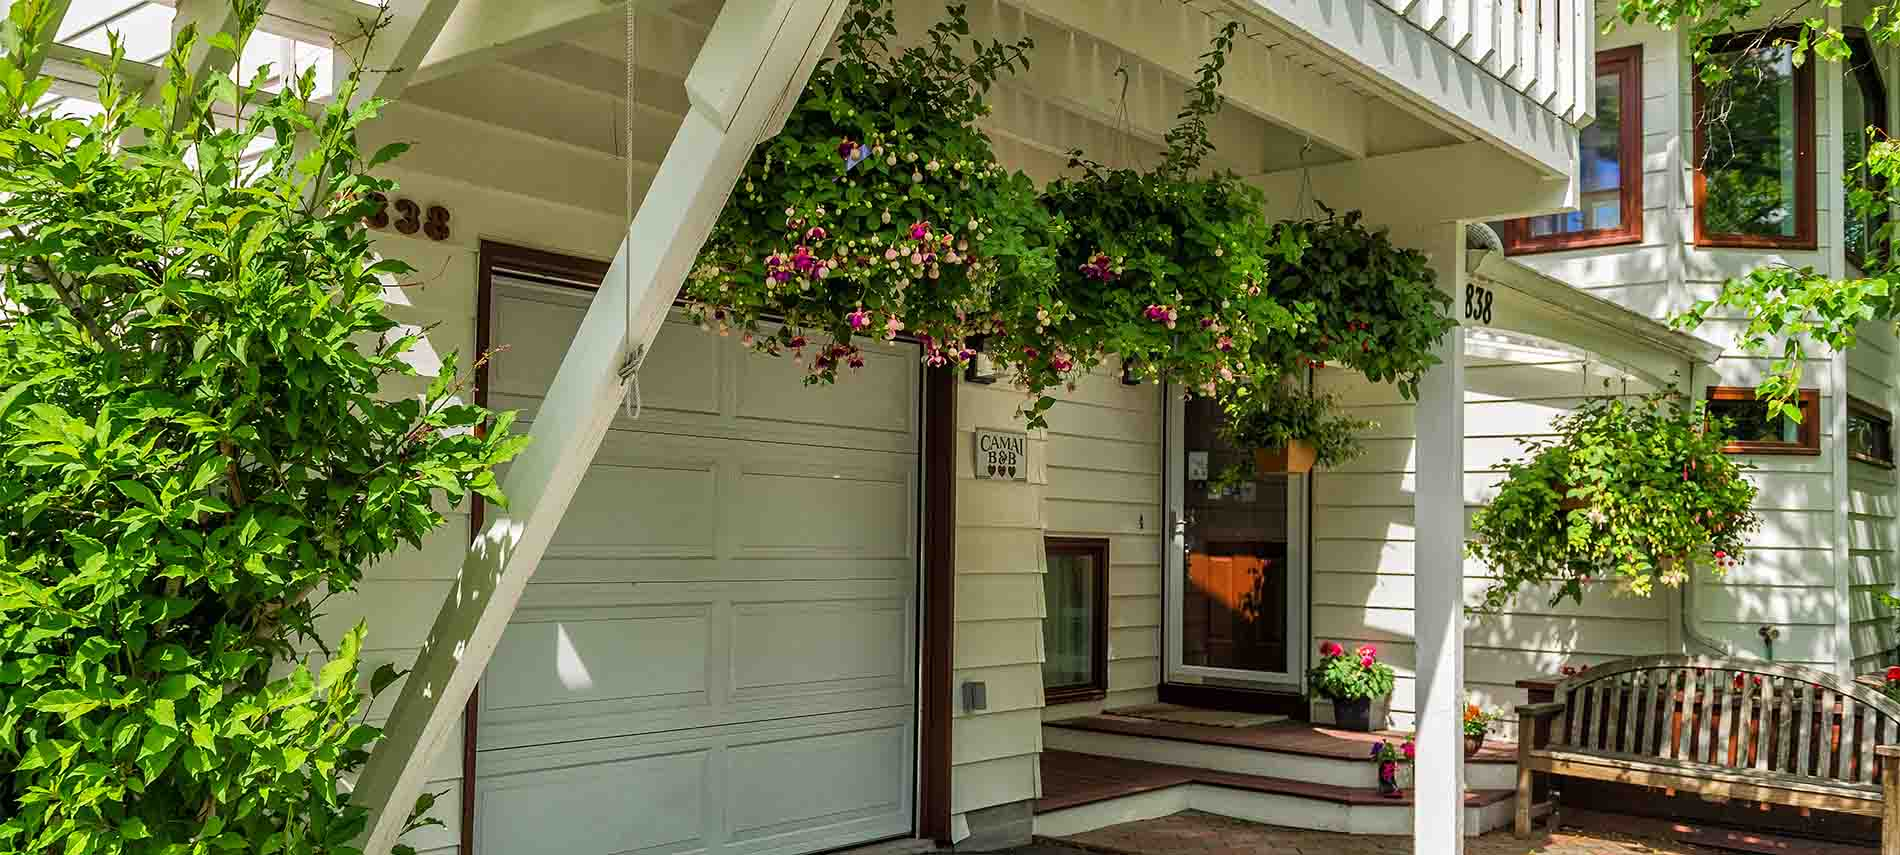 White upper deck with hanging pink fuchsia hanging baskets leads to front entry's deck with garden bench